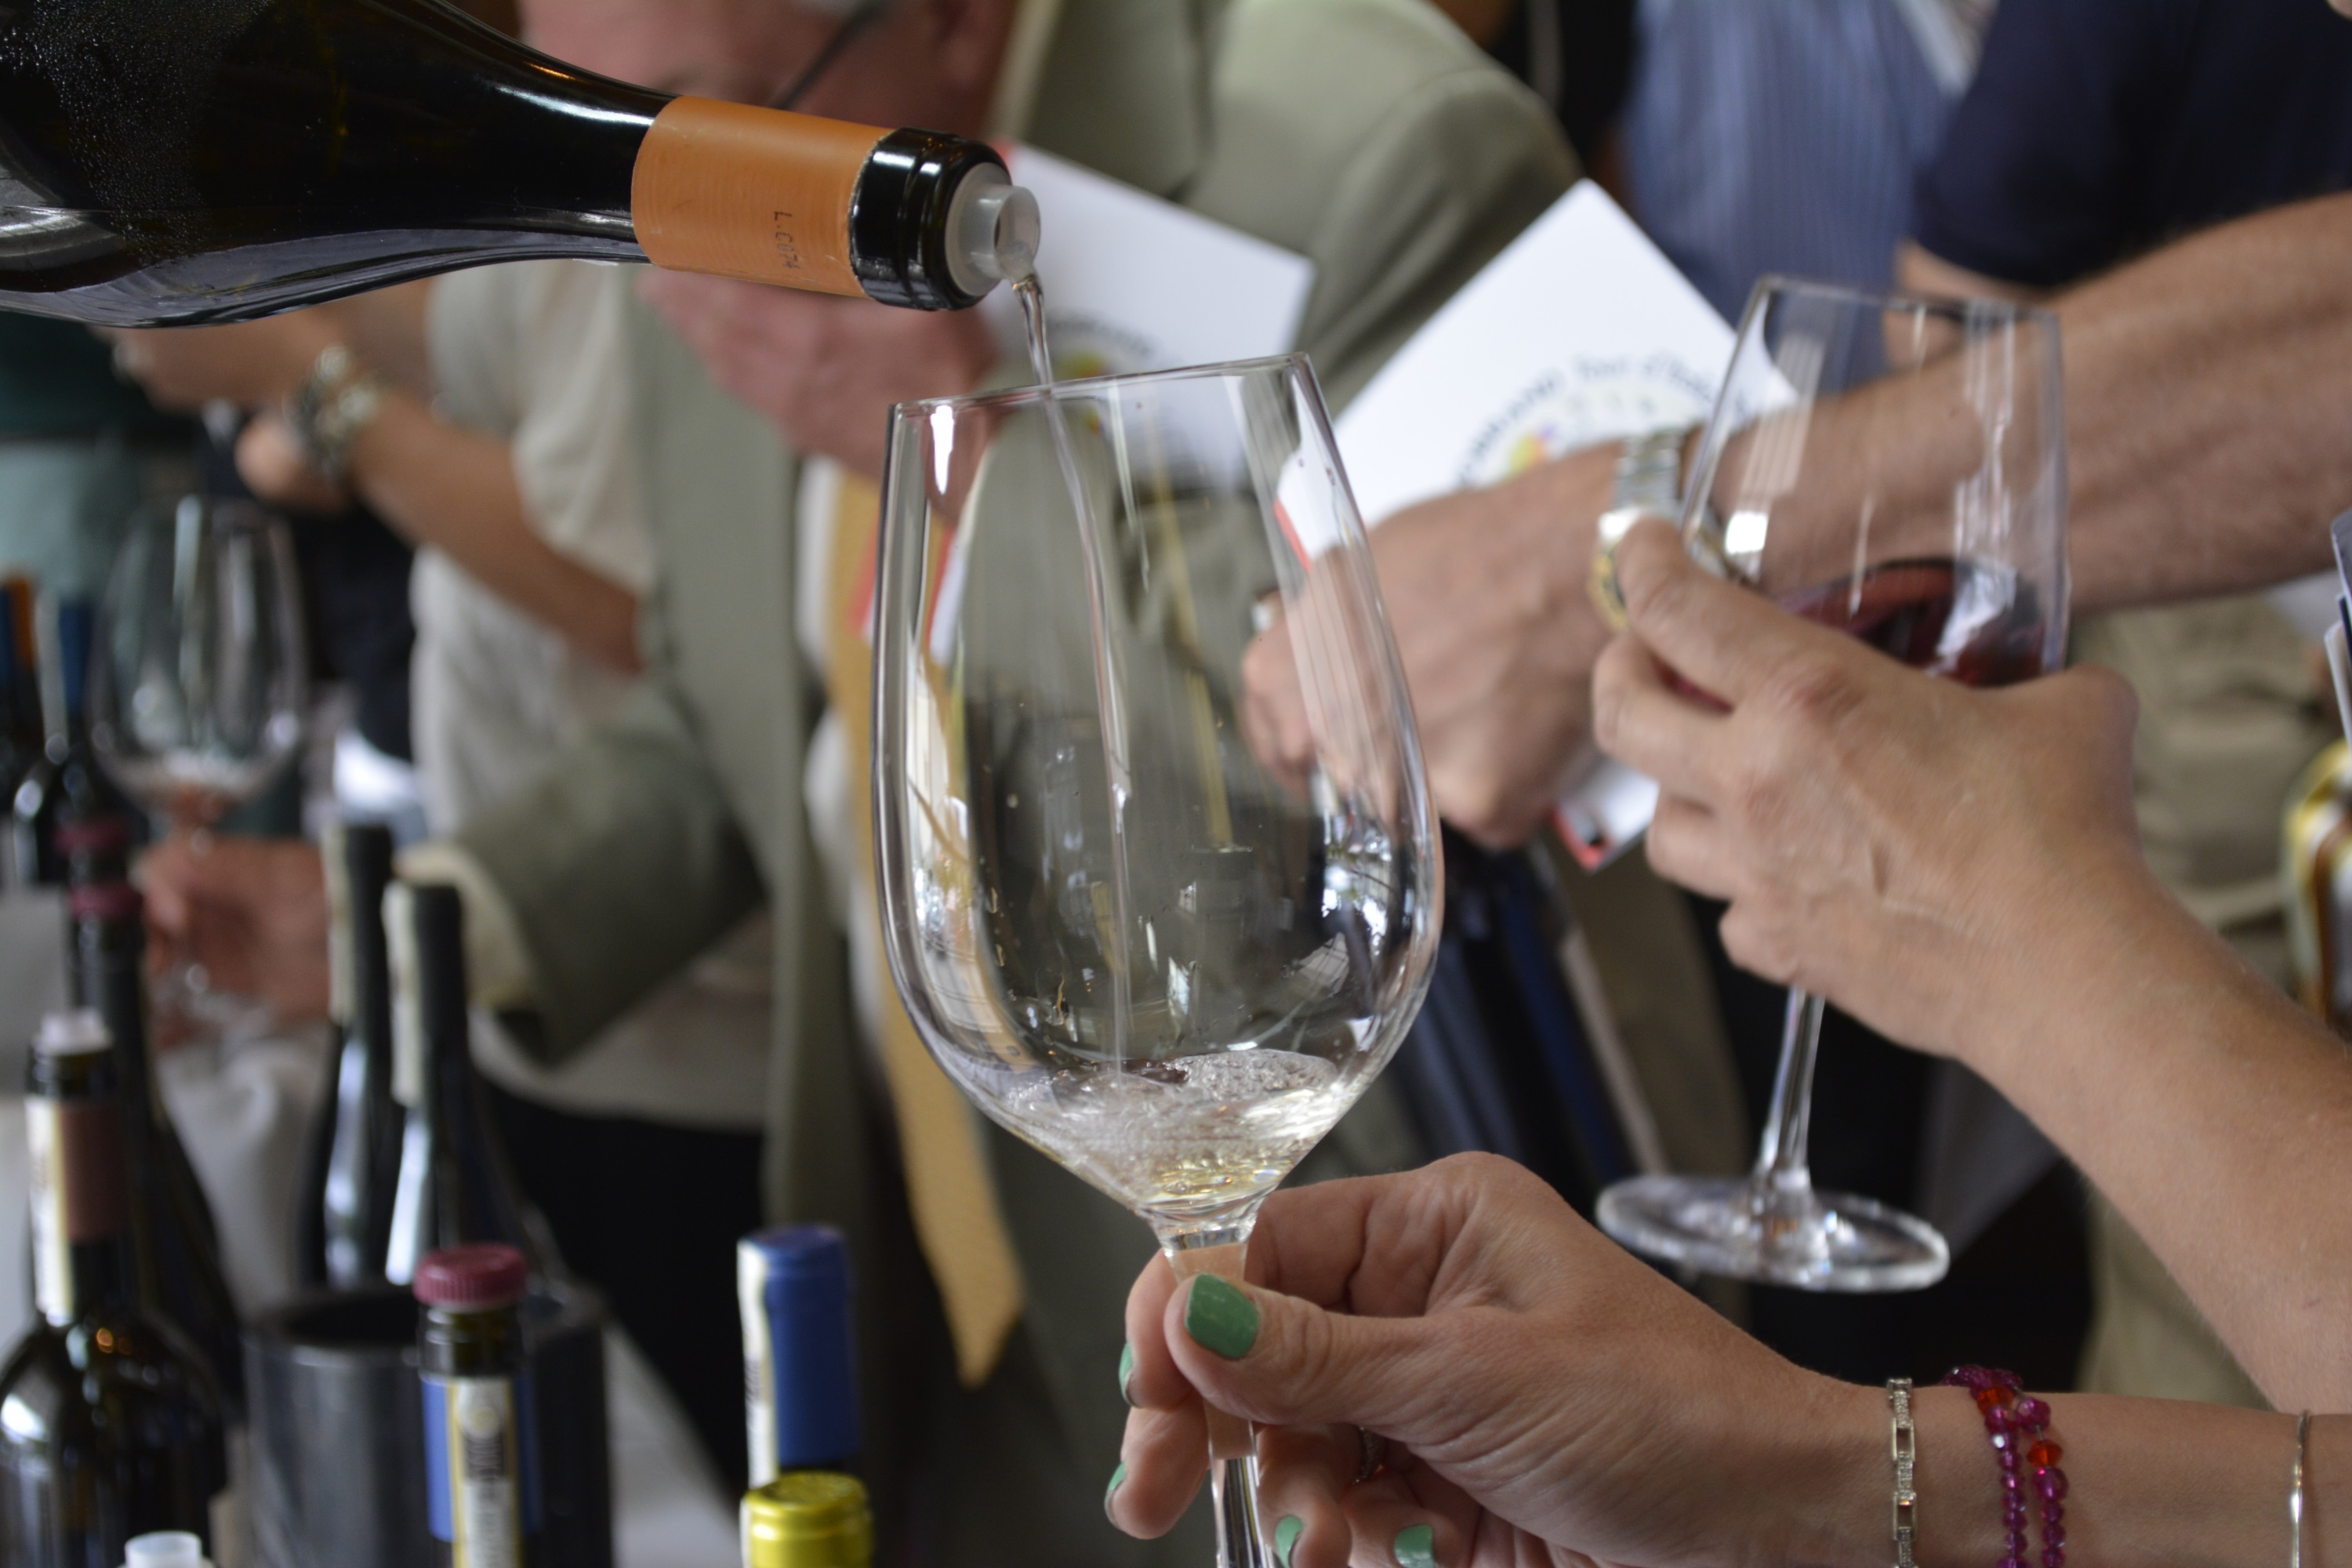 September 26 – 28, 2014: 2nd Annual CT Wine Festival at Durham Fair